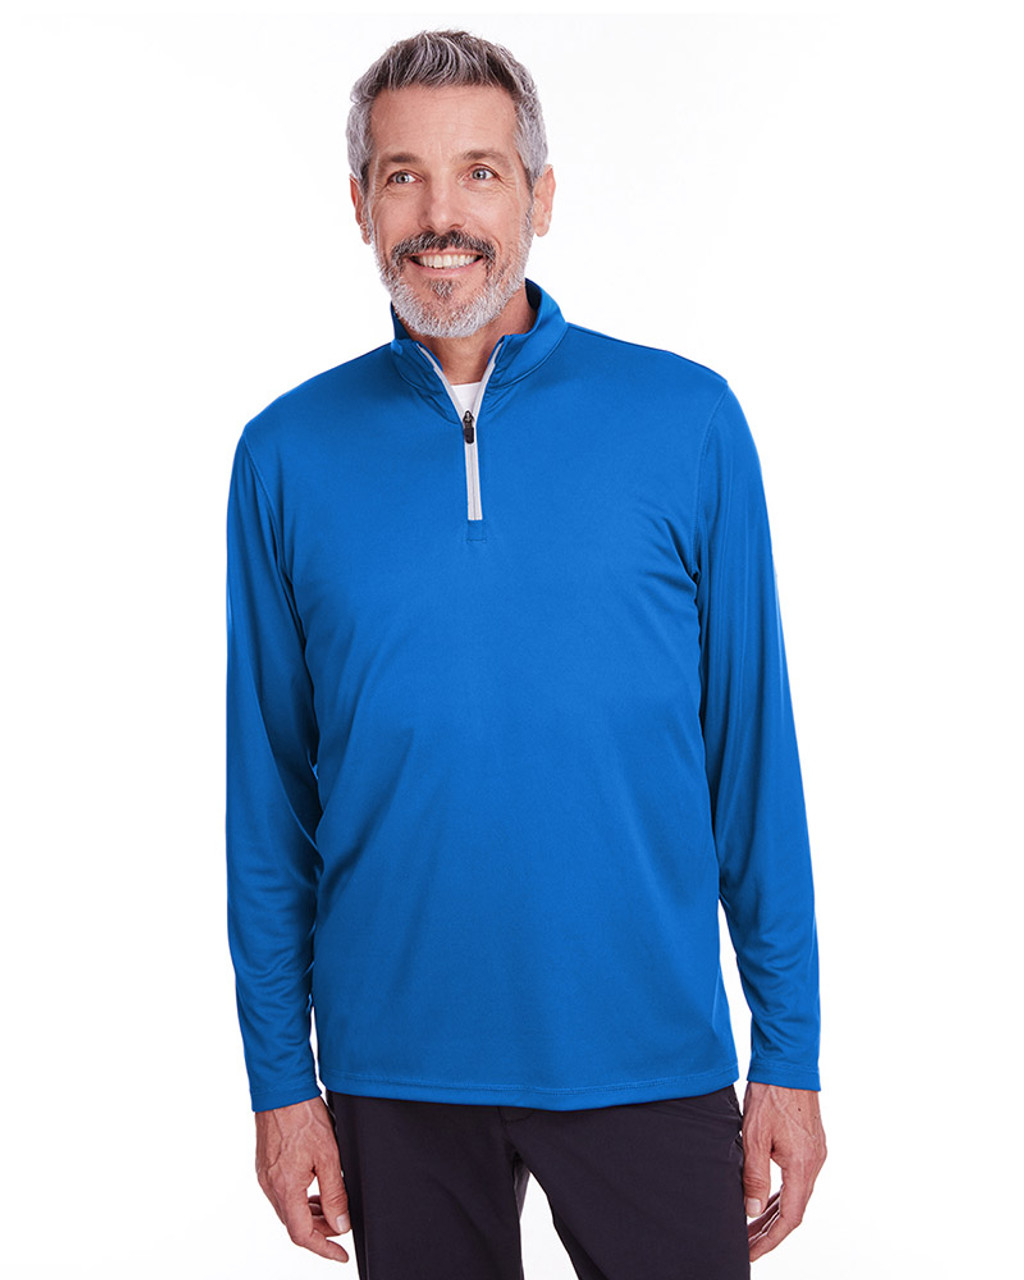 Lapis Blue - 596807 Puma Golf Men's Icon Quarter-Zip Shirt | Blankclothing.ca